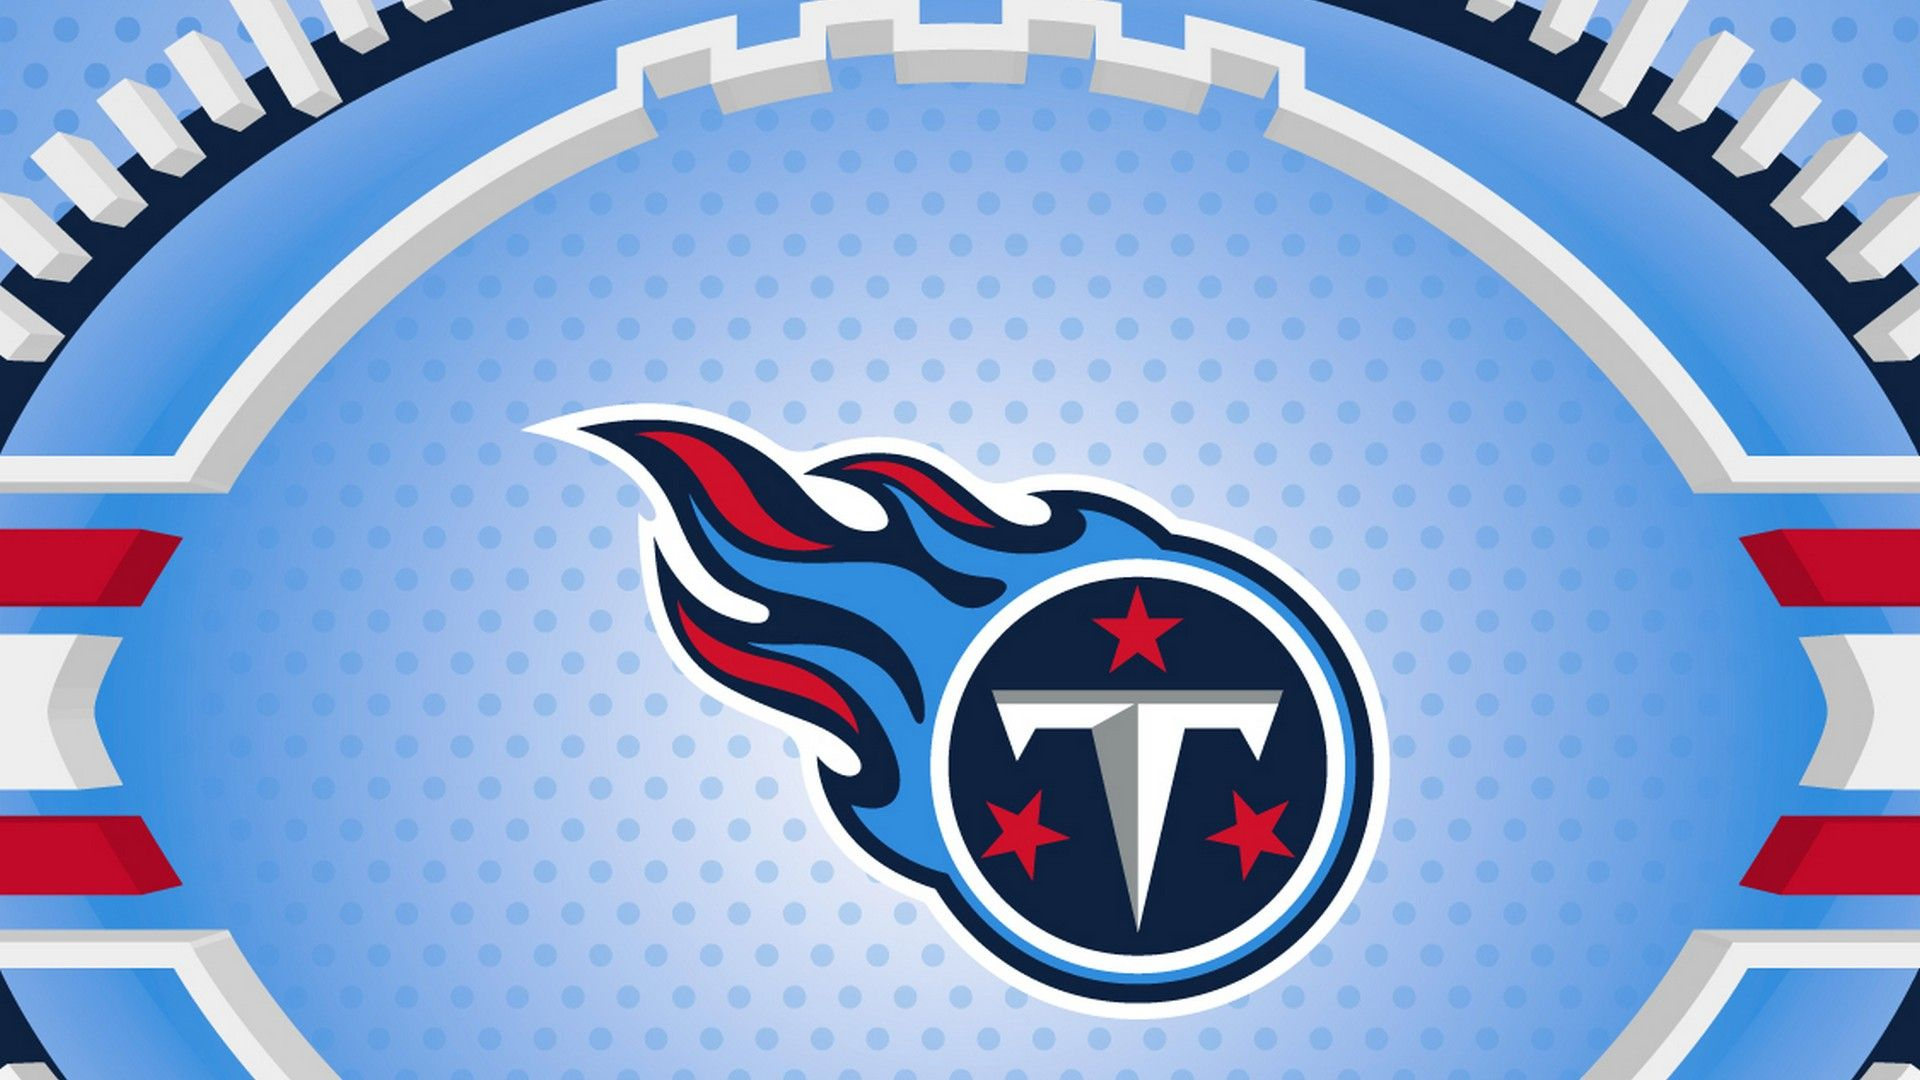 Tennessee Titans Wallpaper Nfl football wallpaper